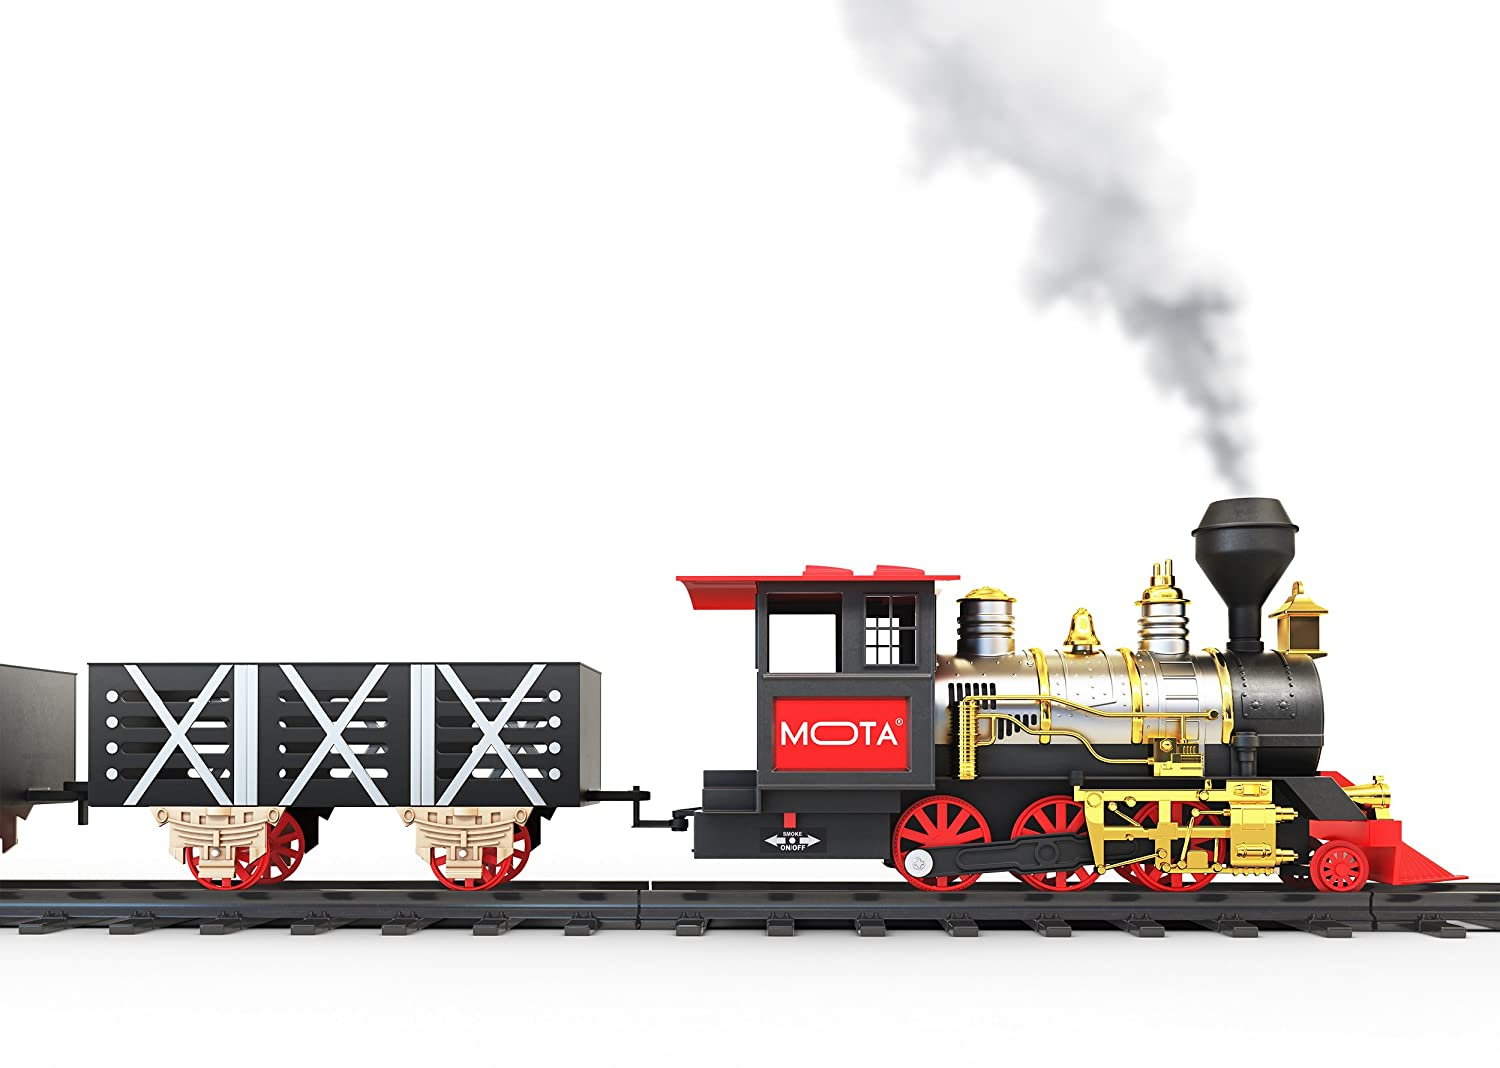 A Full Set with Locomotive Engine, Cargo Cars, Tracks and Christmas Spirit